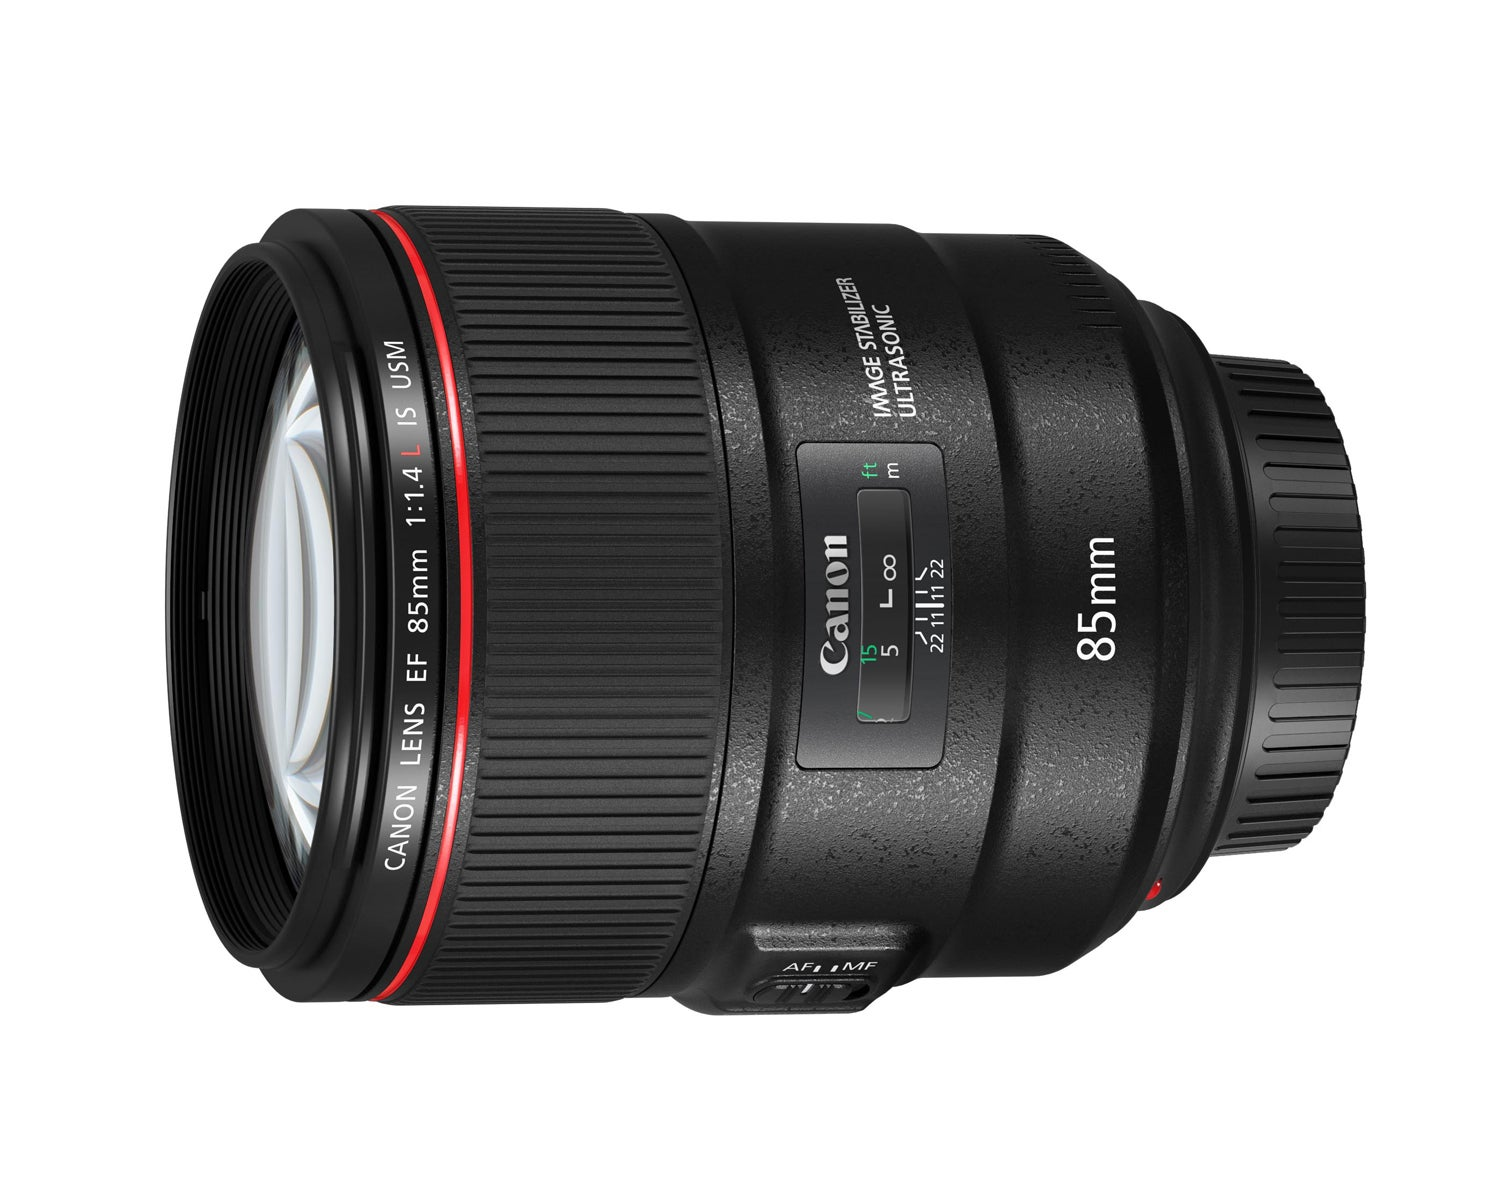 Best canon lenses: Canon EF 85mm f/1.4L IS USM